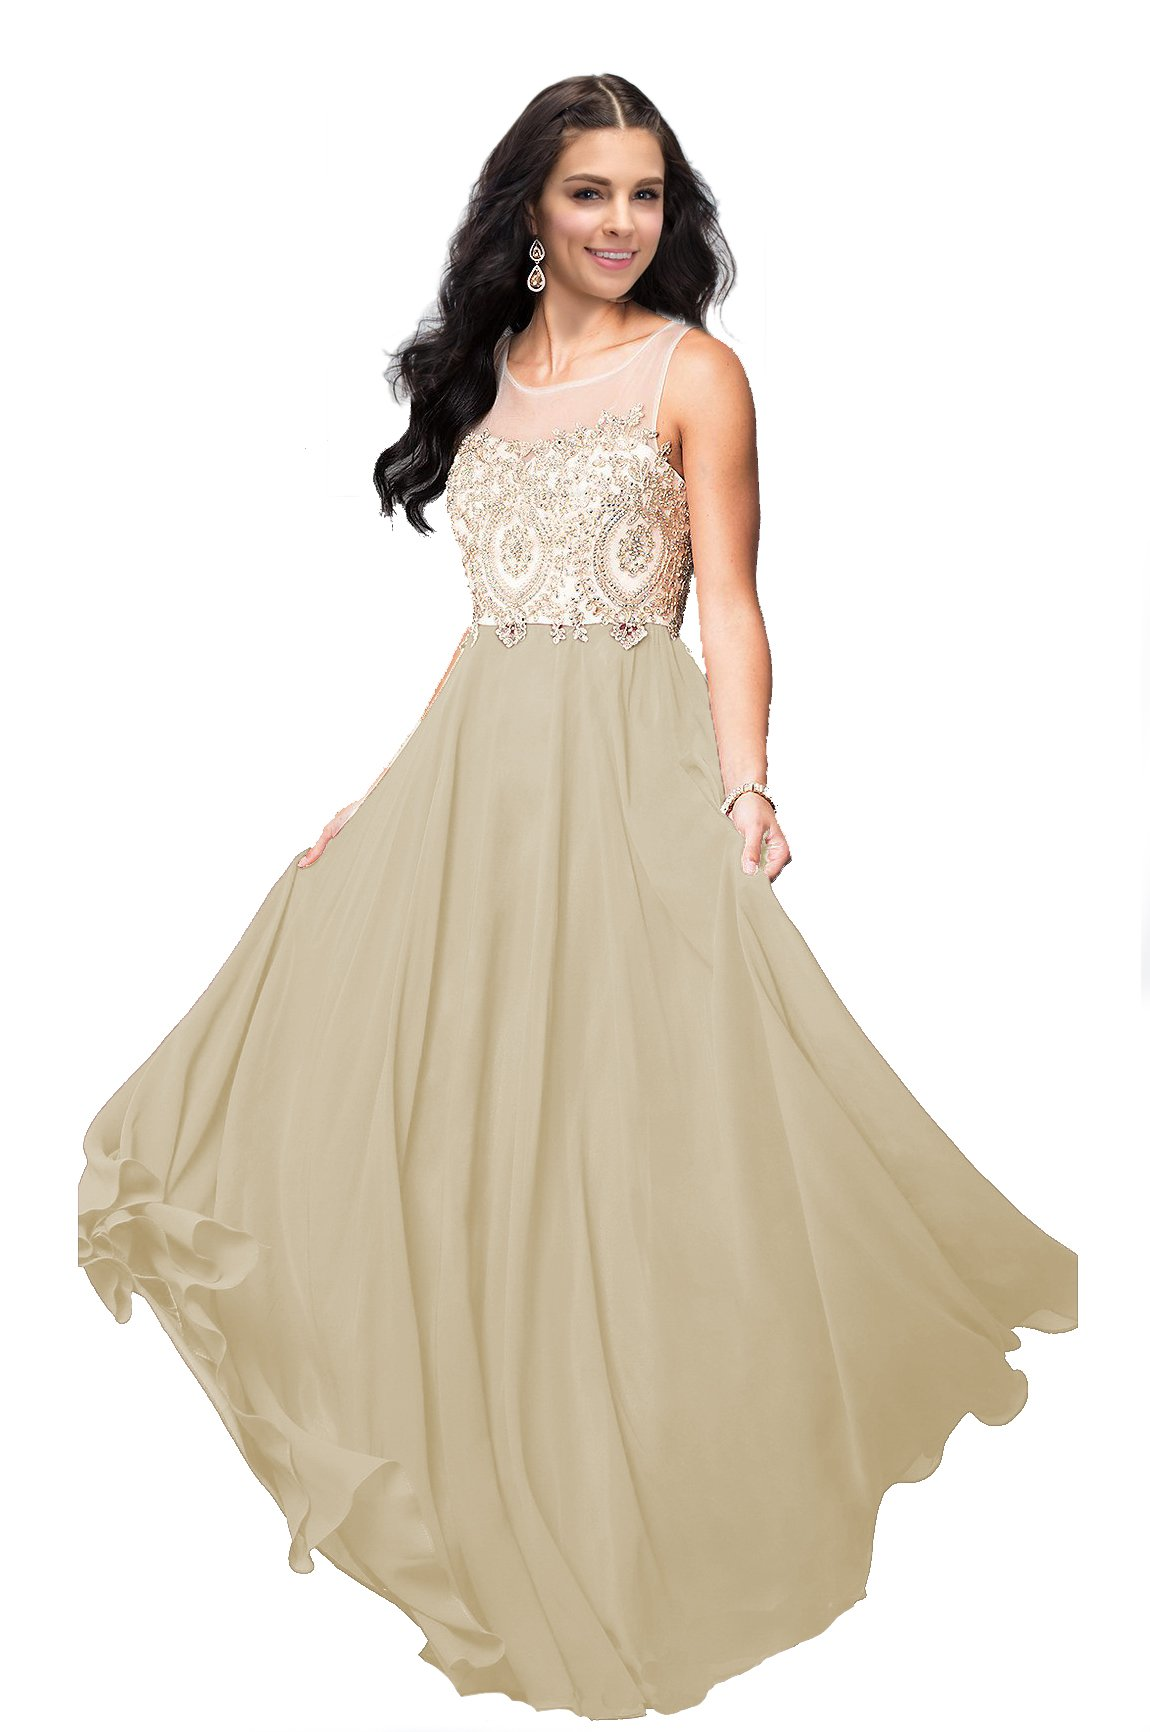 7477b25612a Lily Wedding Womens Beaded Gold Applique Prom Dress 2019 Long Chiffon  Bridesmaid Dresses Sleeveless Evening Formal Gown D25 Plus Size 18 Champagne